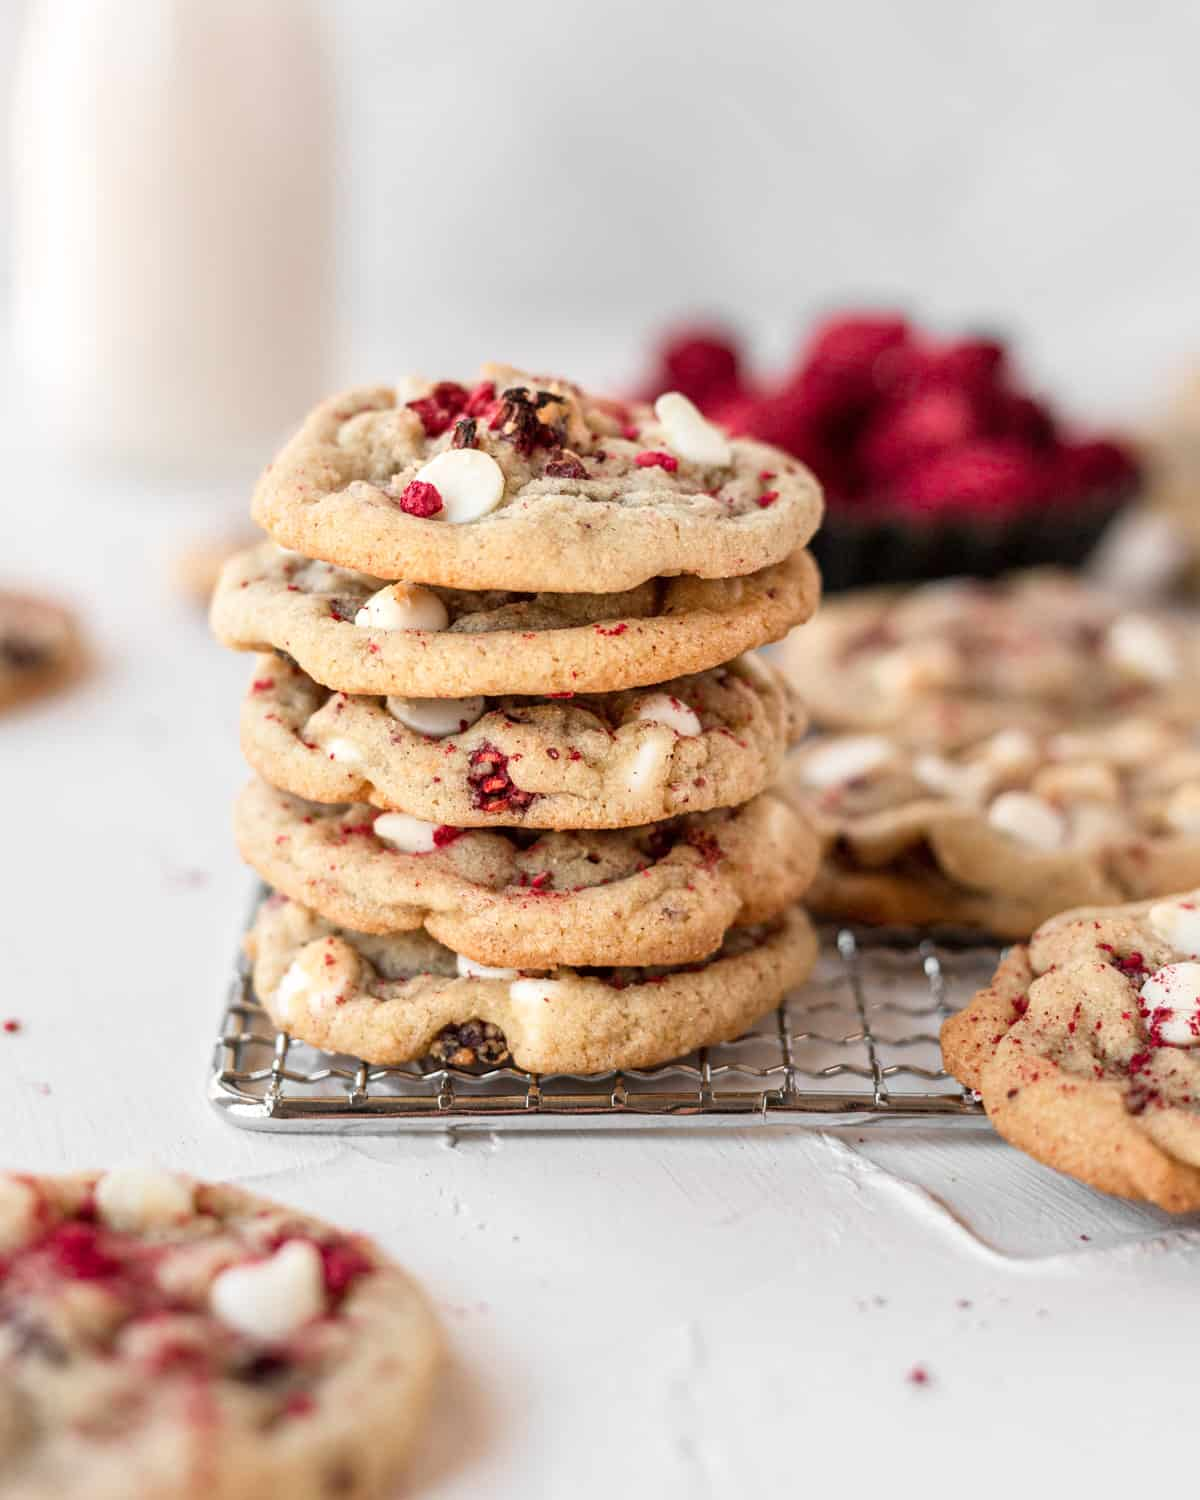 stack of 5 cookies on a wire cooling rack with cookies around and raspberries in the background